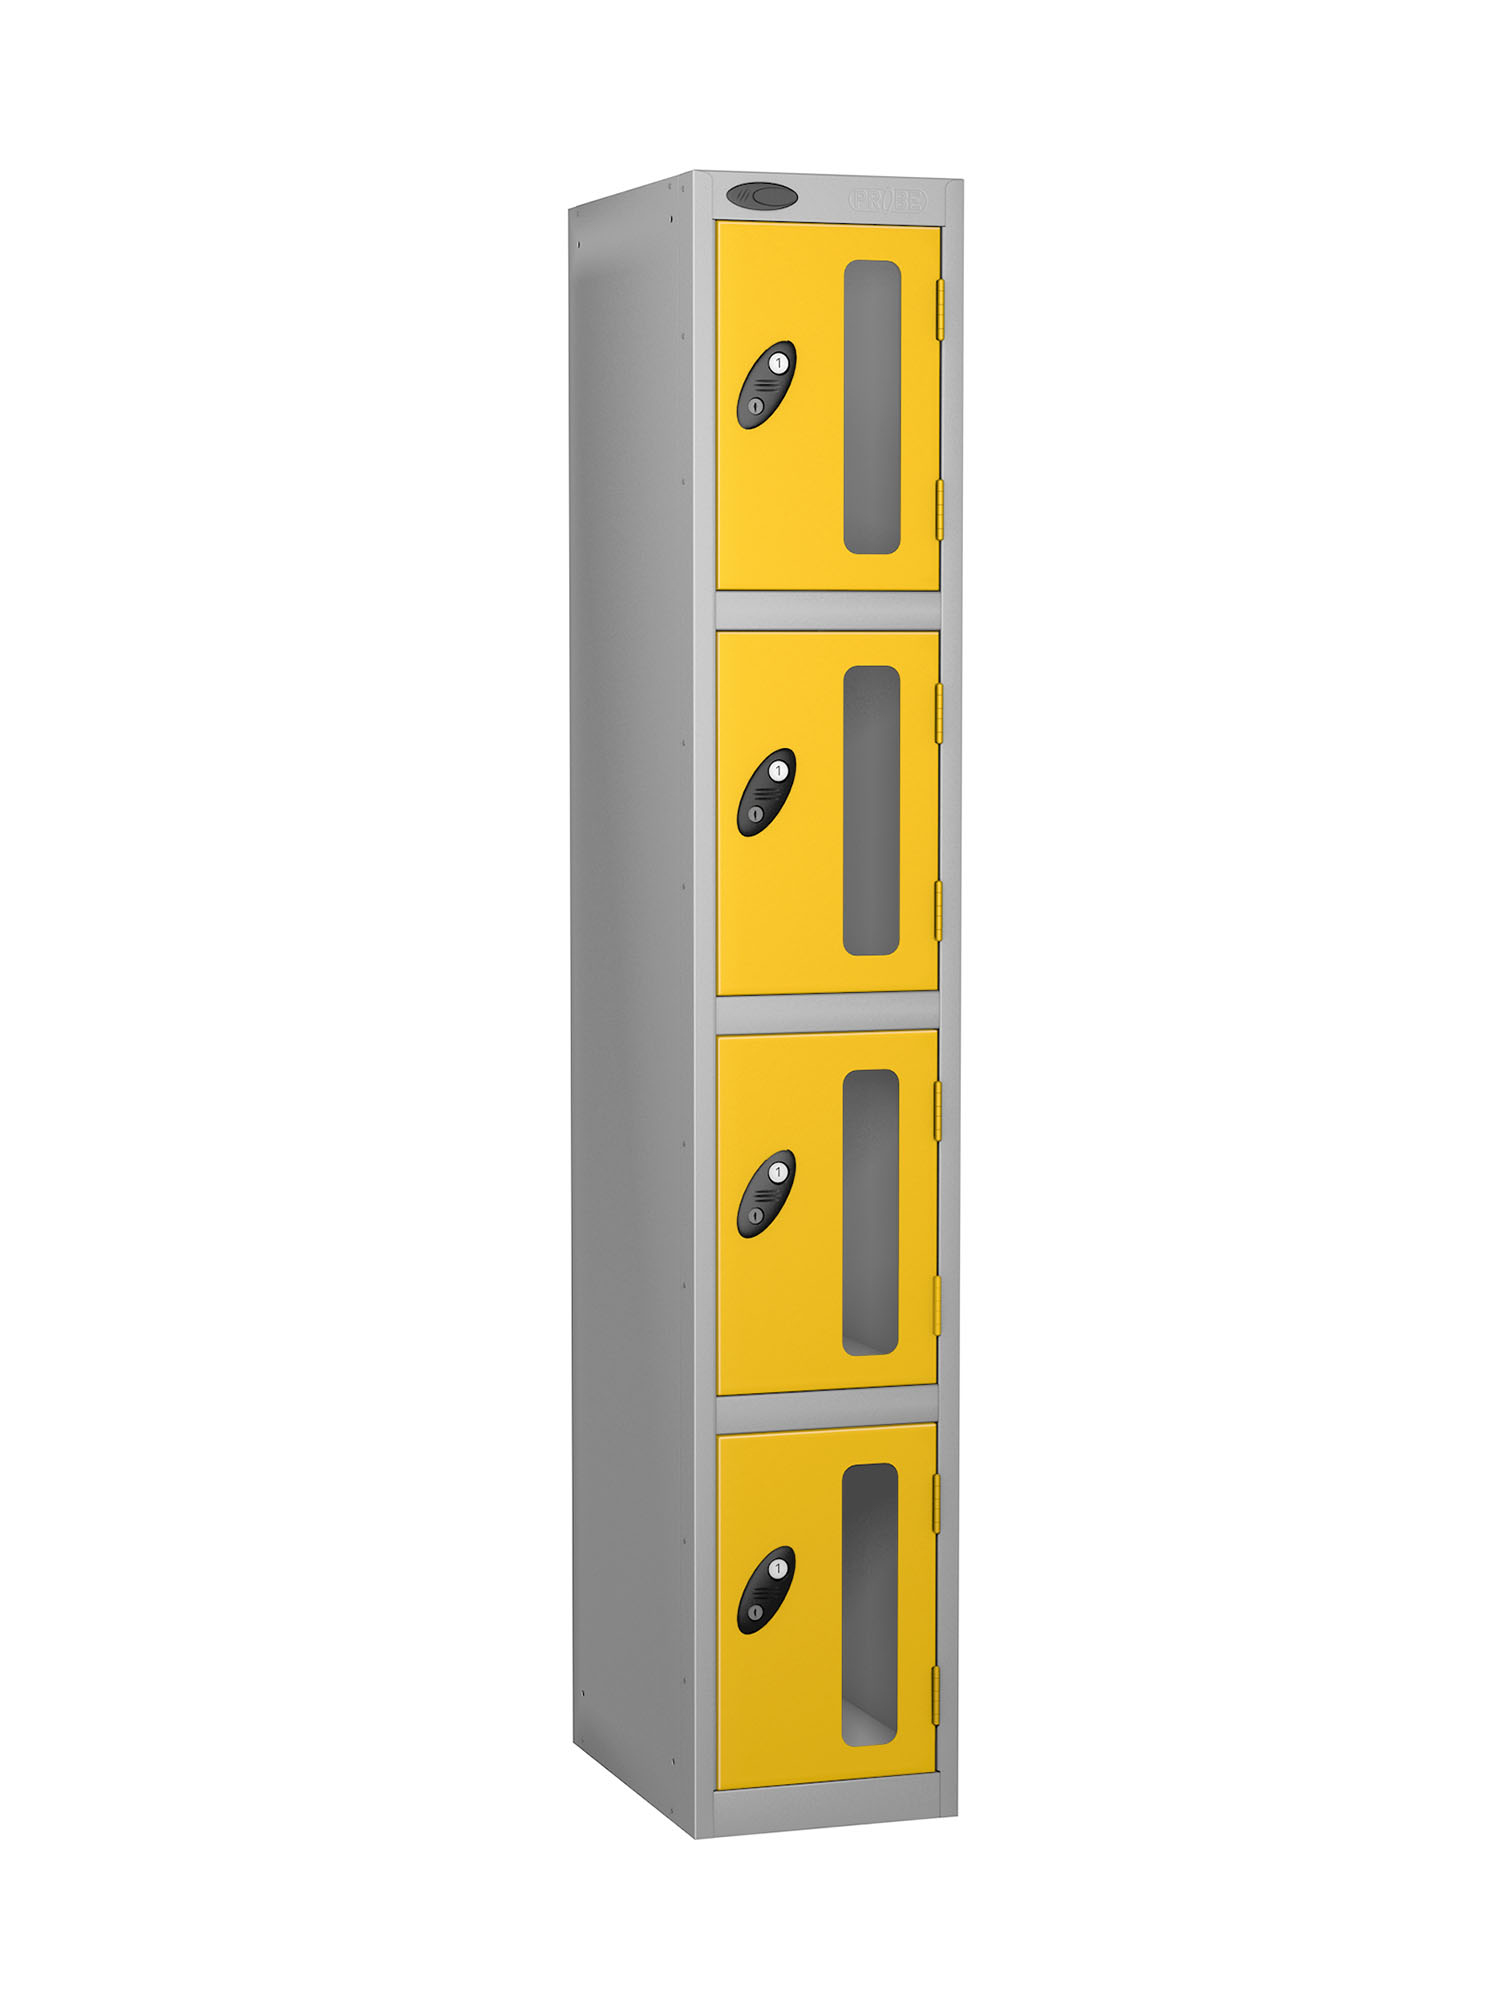 Probe 4 doors vision panel anti-stock theft locker yellow